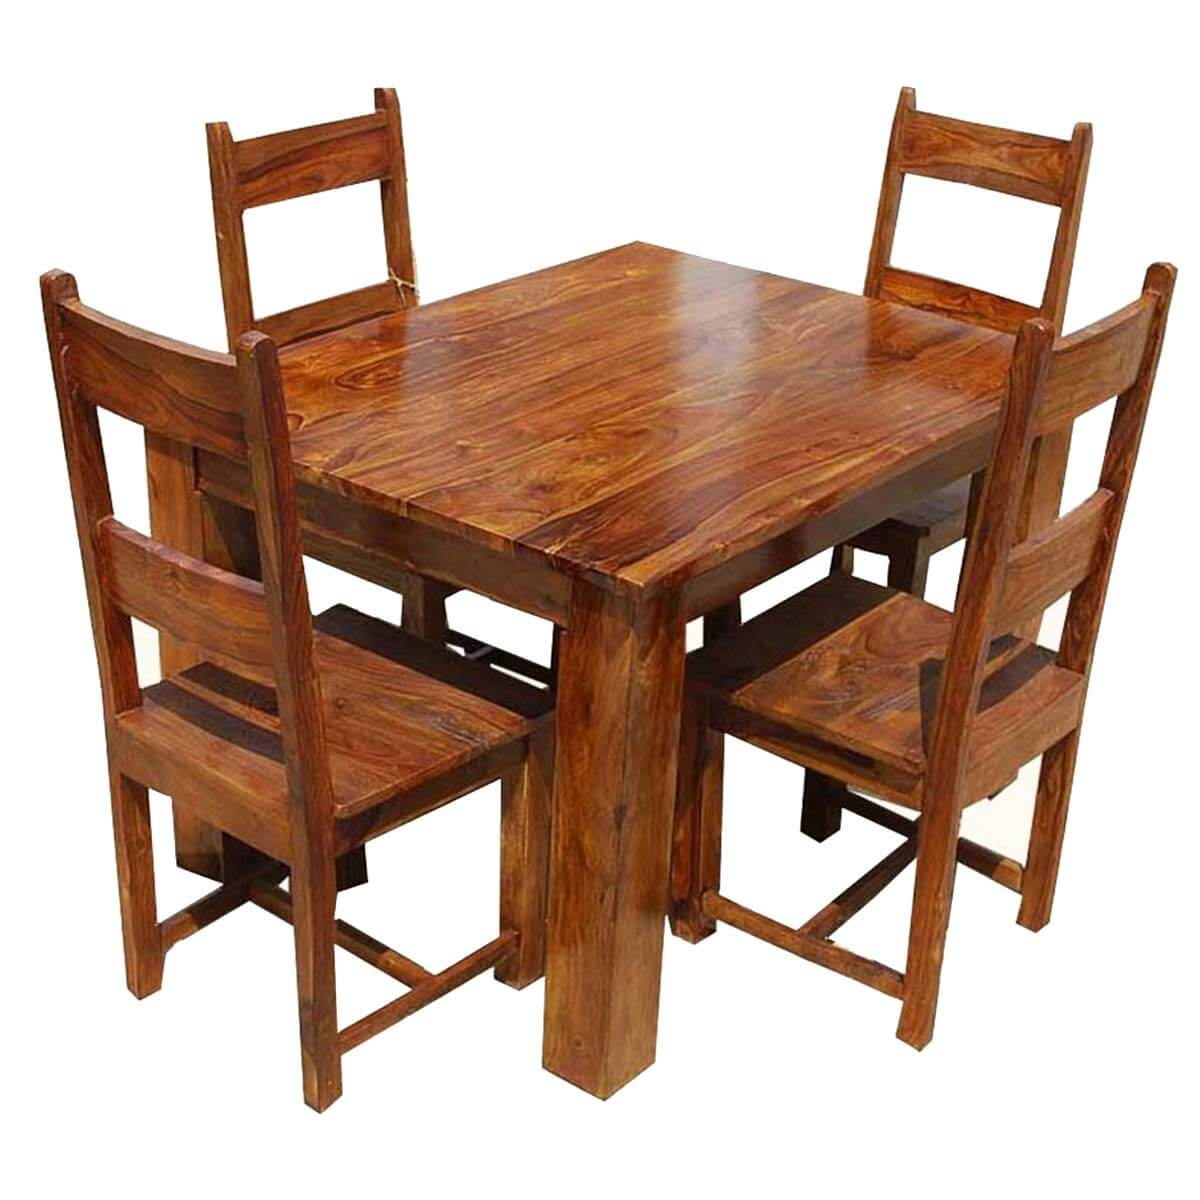 Rustic mission santa cruz solid wood dining room set for 4 for Solid wood dining table sets